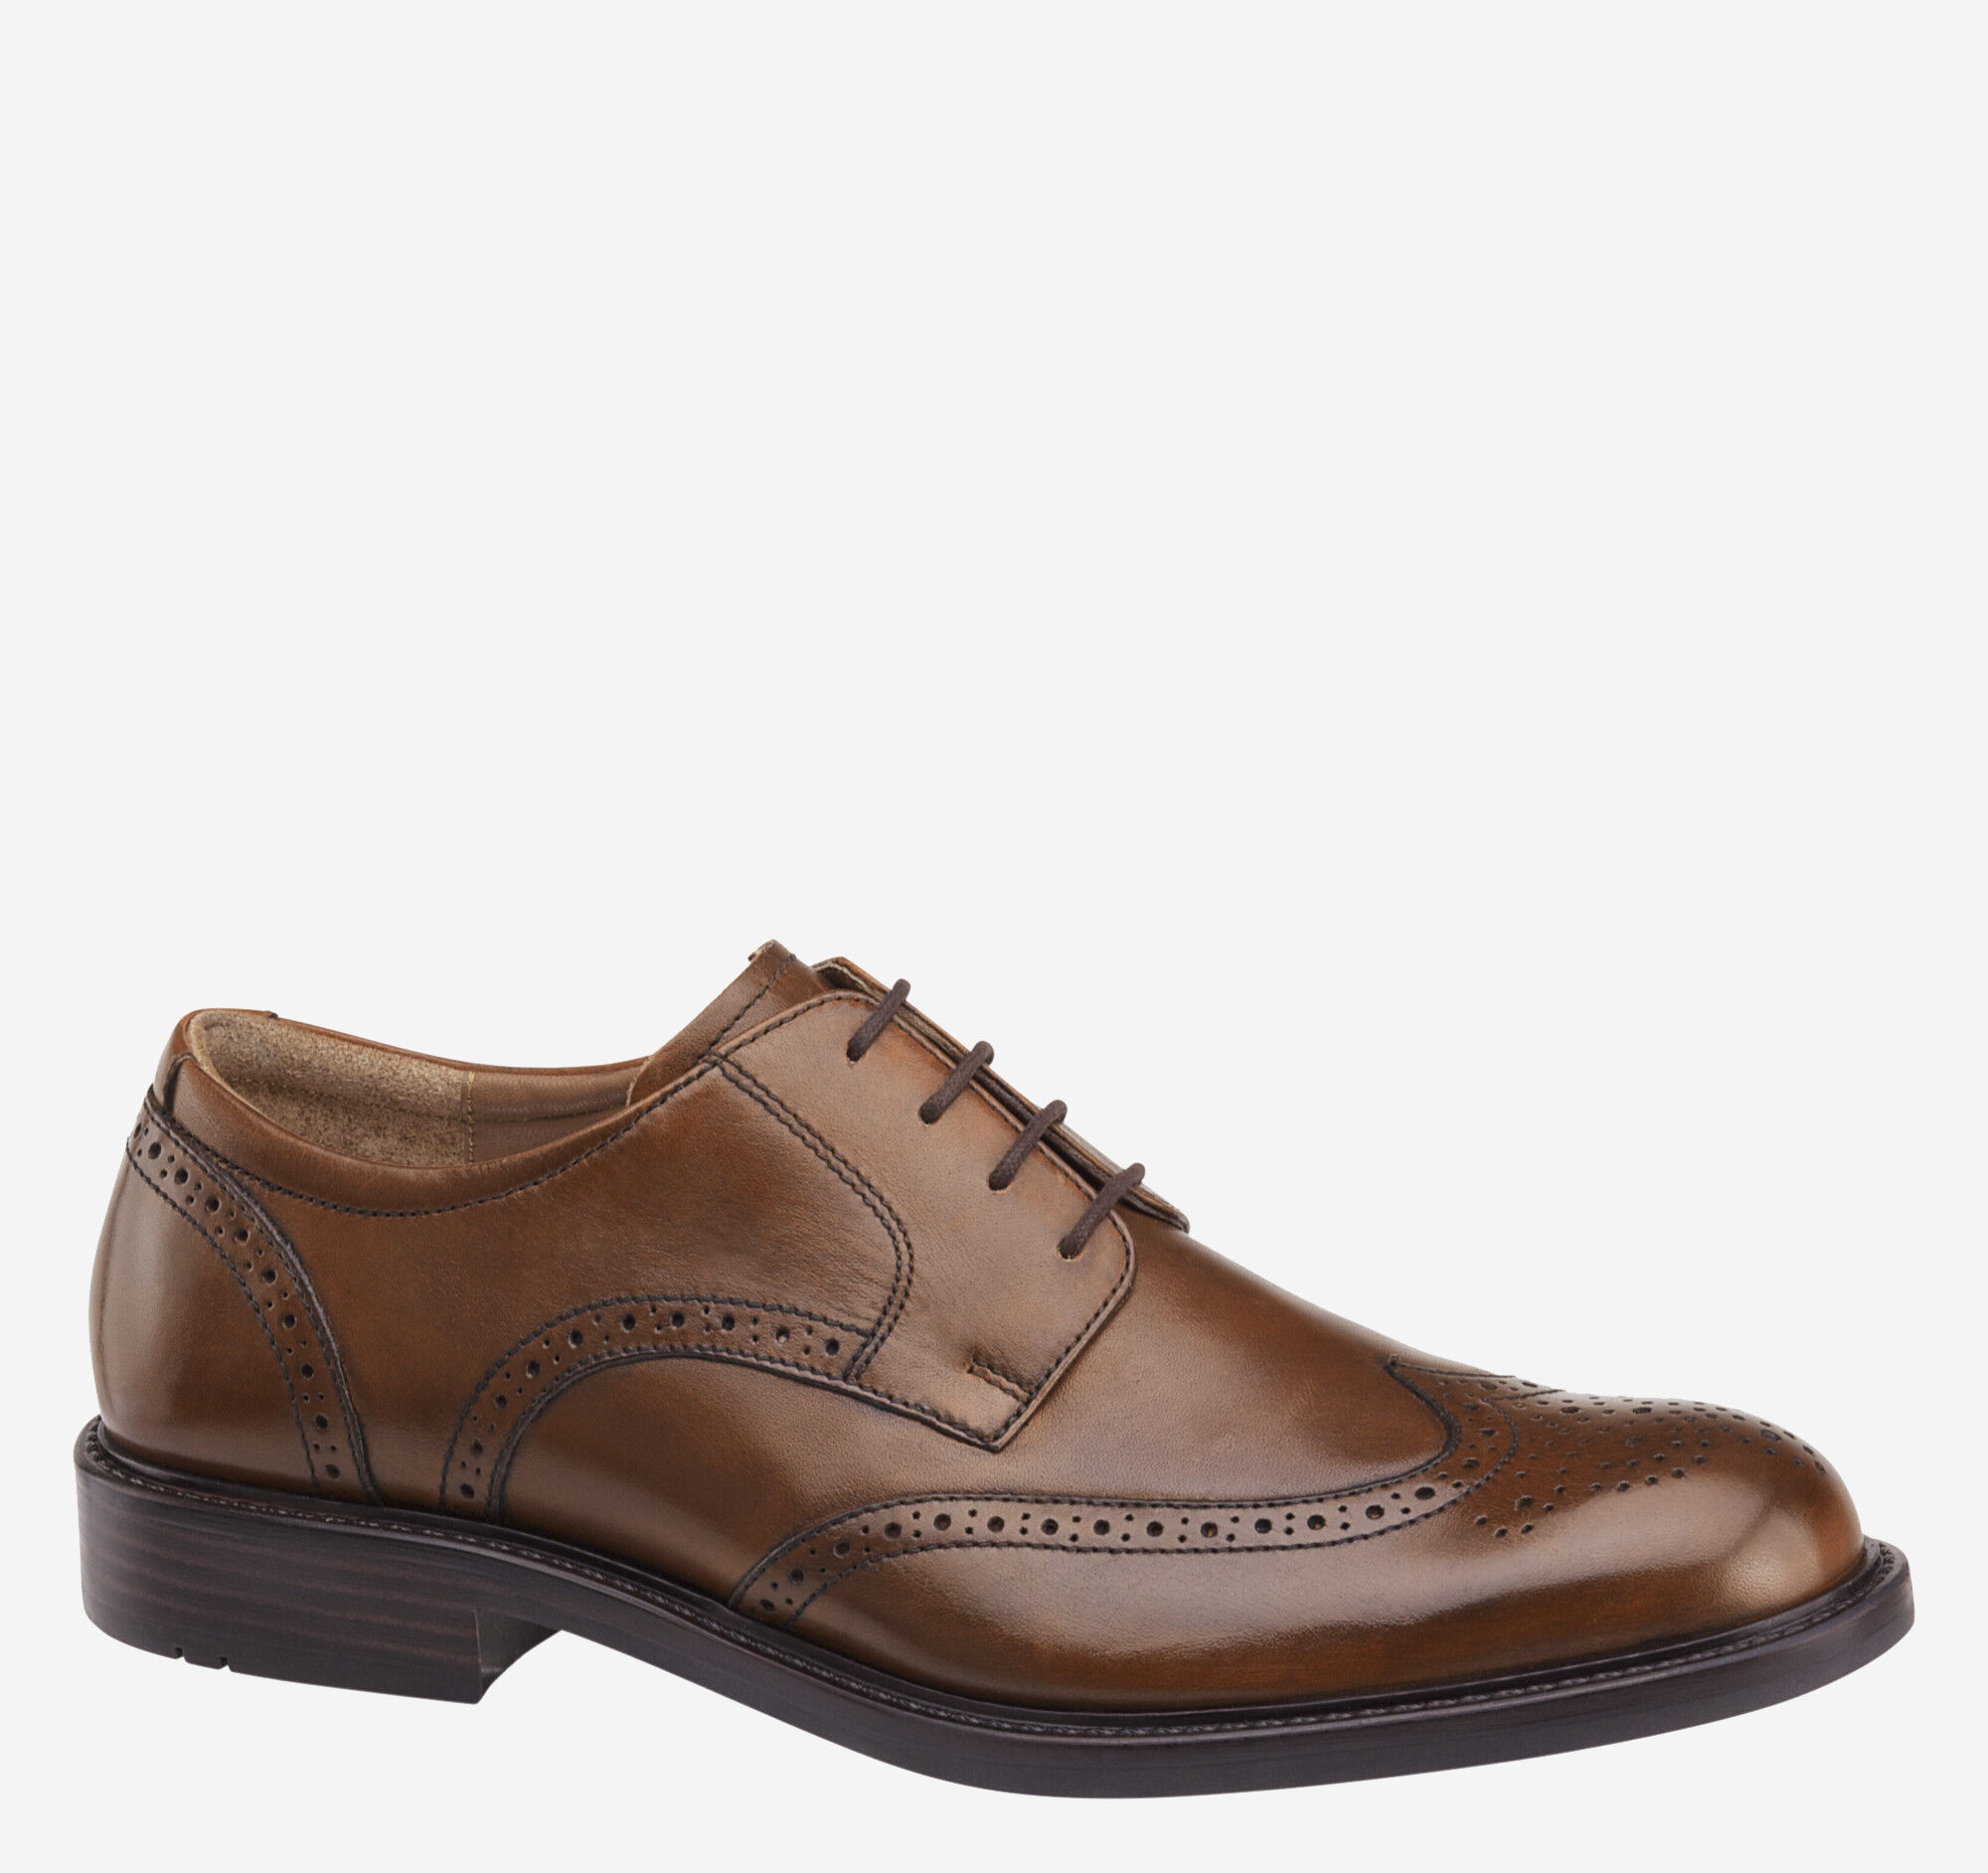 Johnston & Murphy Men's Tabor Wing Tip Oxfords Men's Shoes coOlS